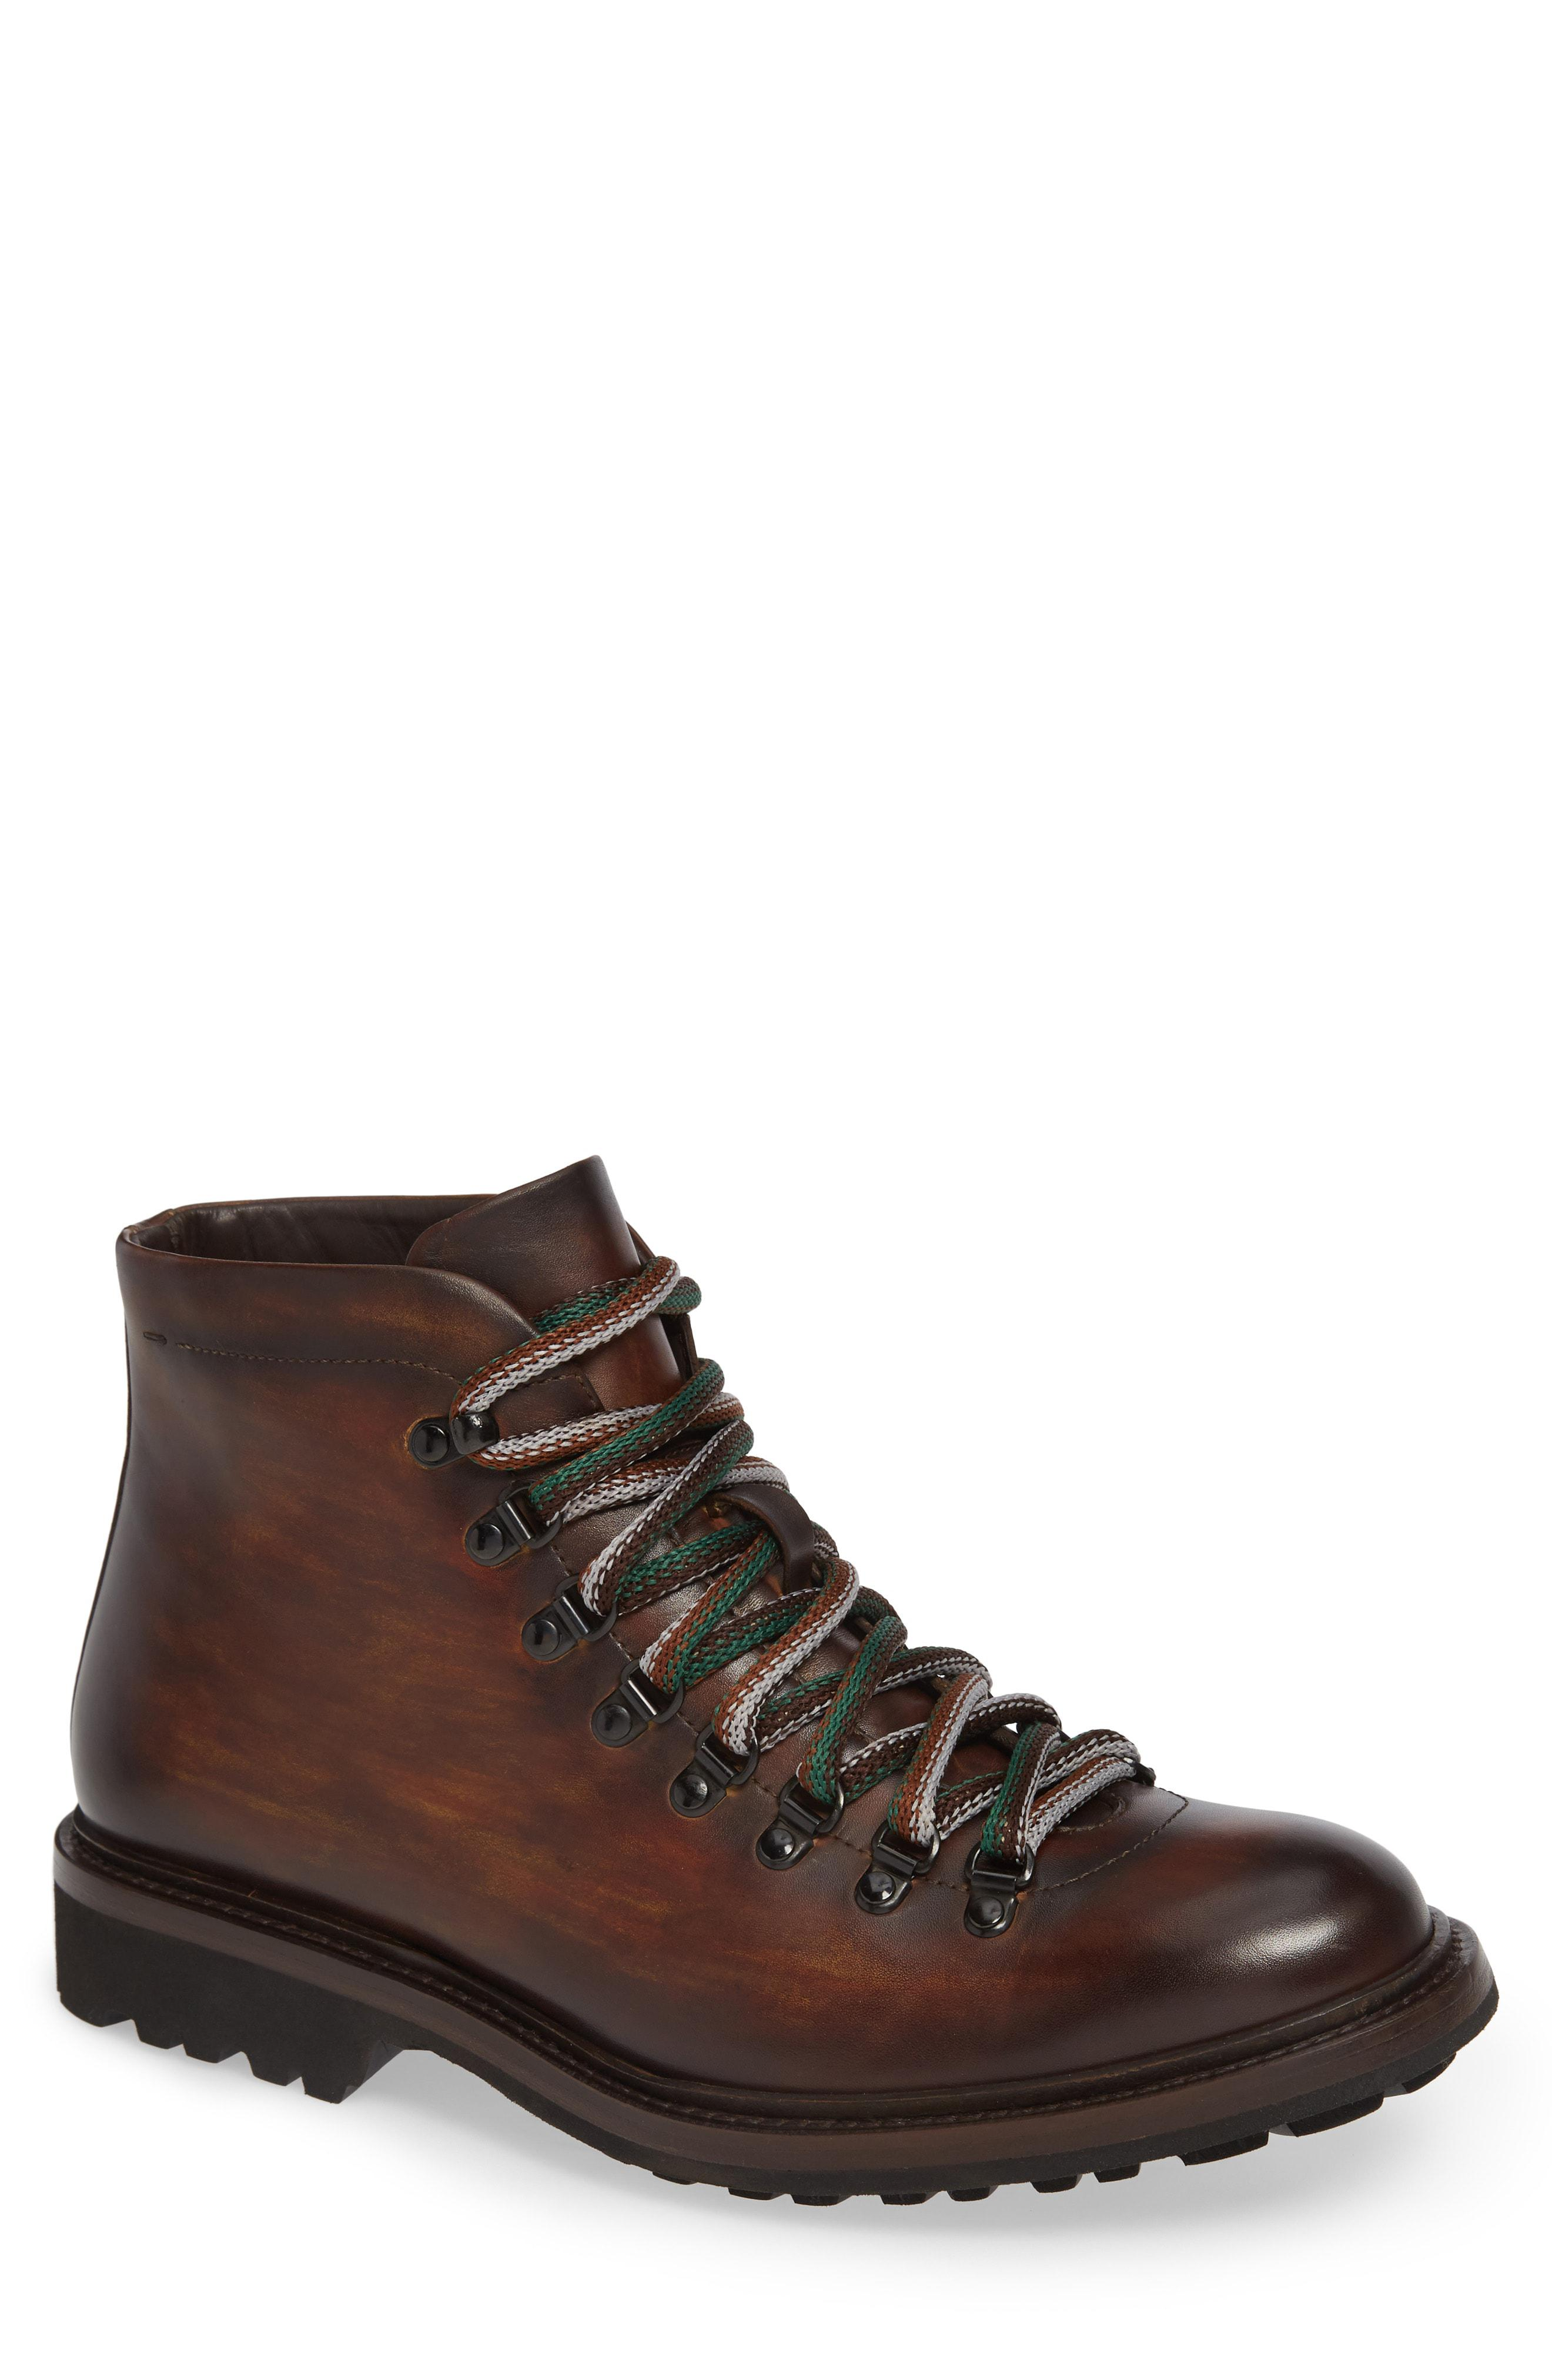 2fccb88f309 Magnanni Shoes - Multicolor Montana Water Resistant Hiking Boot for Men -  Lyst